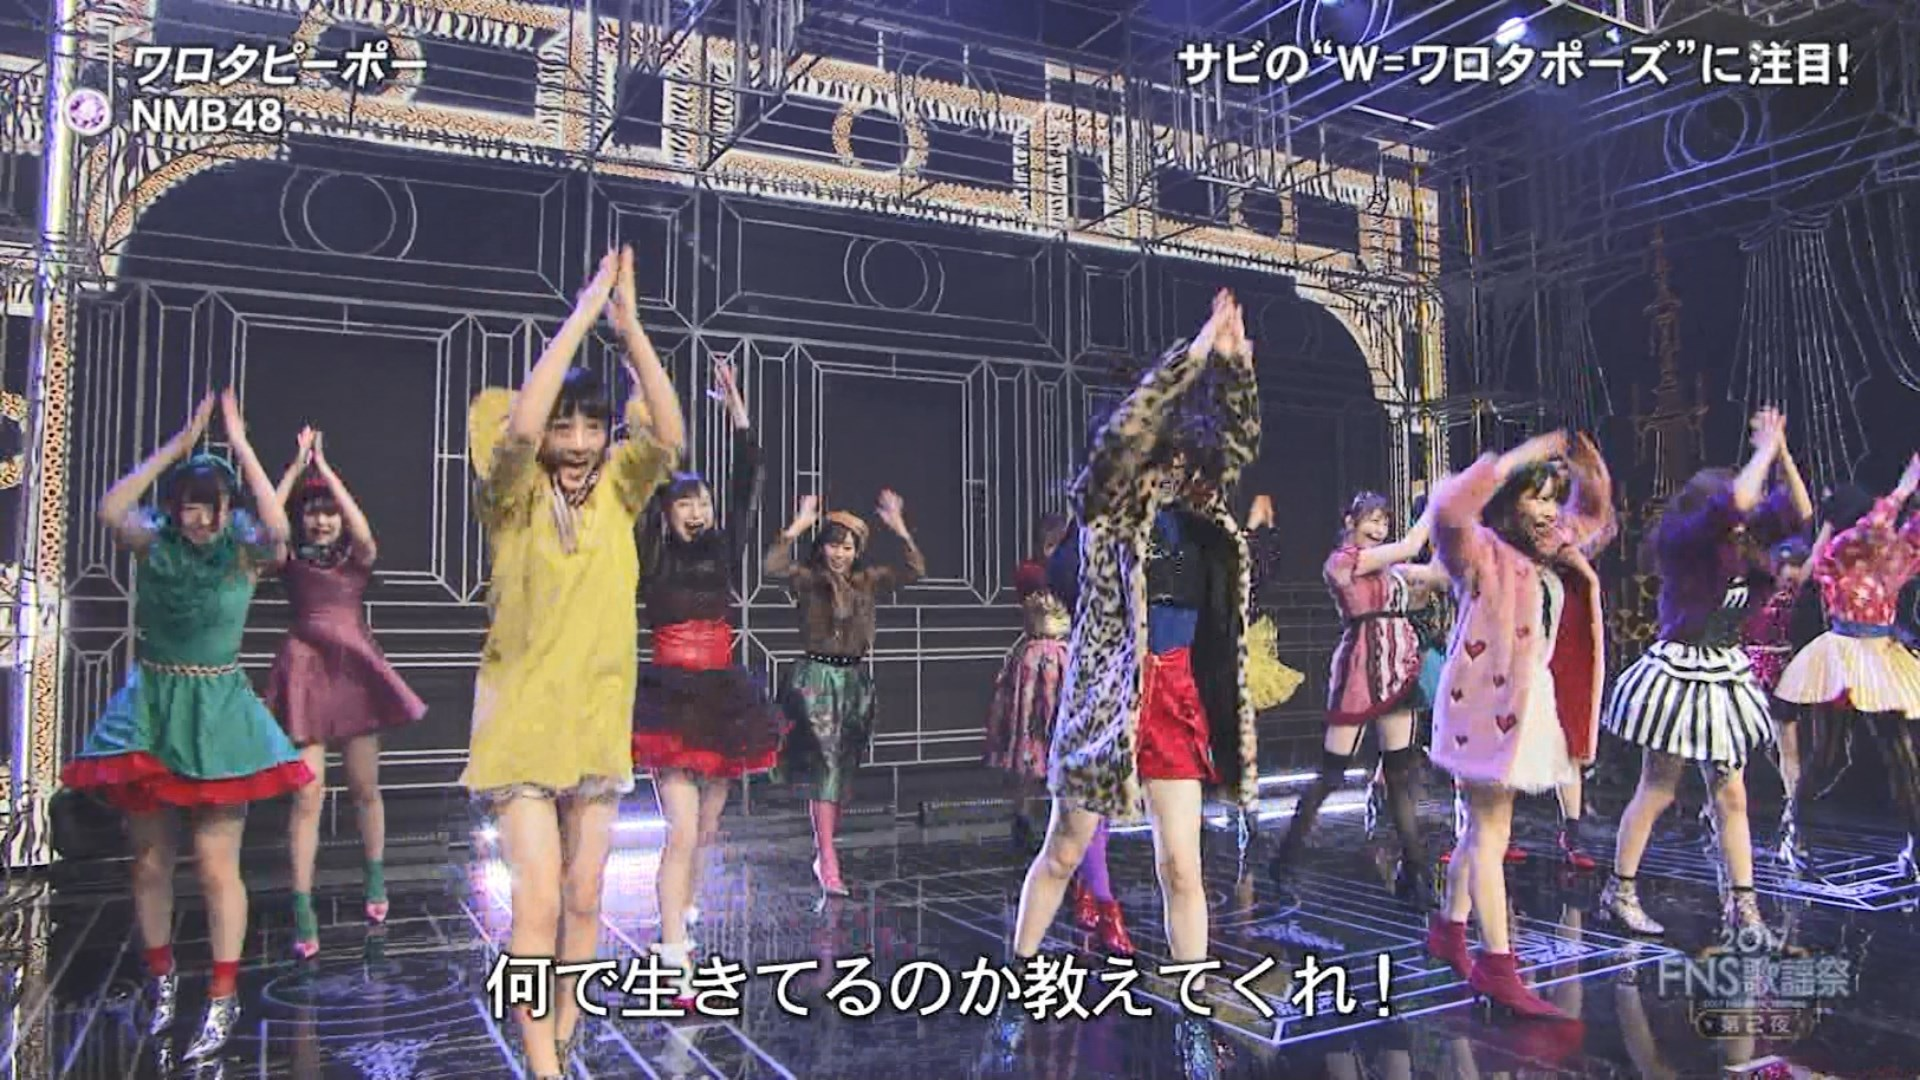 2017FNS歌謡祭第2夜・NMB48ワロタピーポーキャプ-085